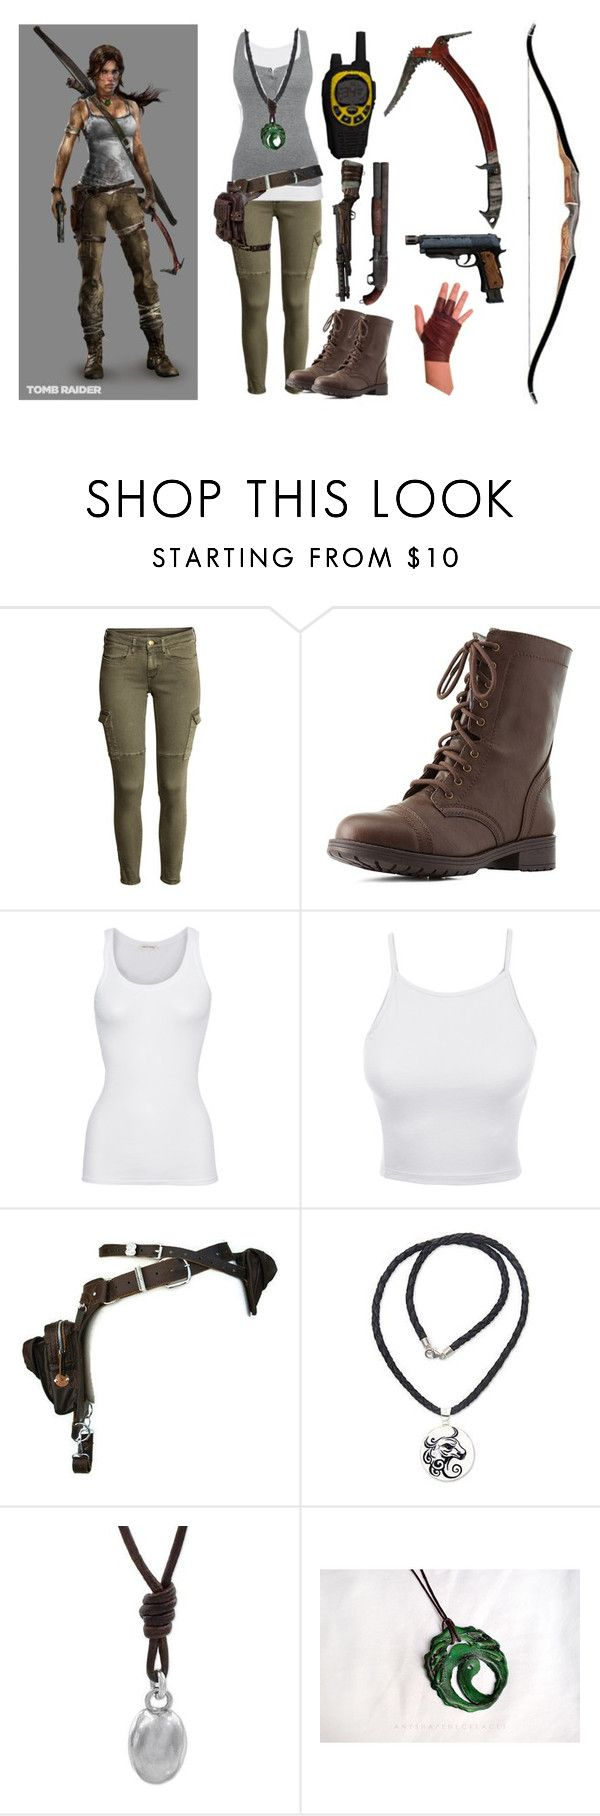 """""""Lara Croft [Tomb Raider 2013]"""" by musiclover55 ❤ liked on Polyvore featuring H&M, Charlotte Russe, American Vintage, LE3NO, Holster and NOVICA"""